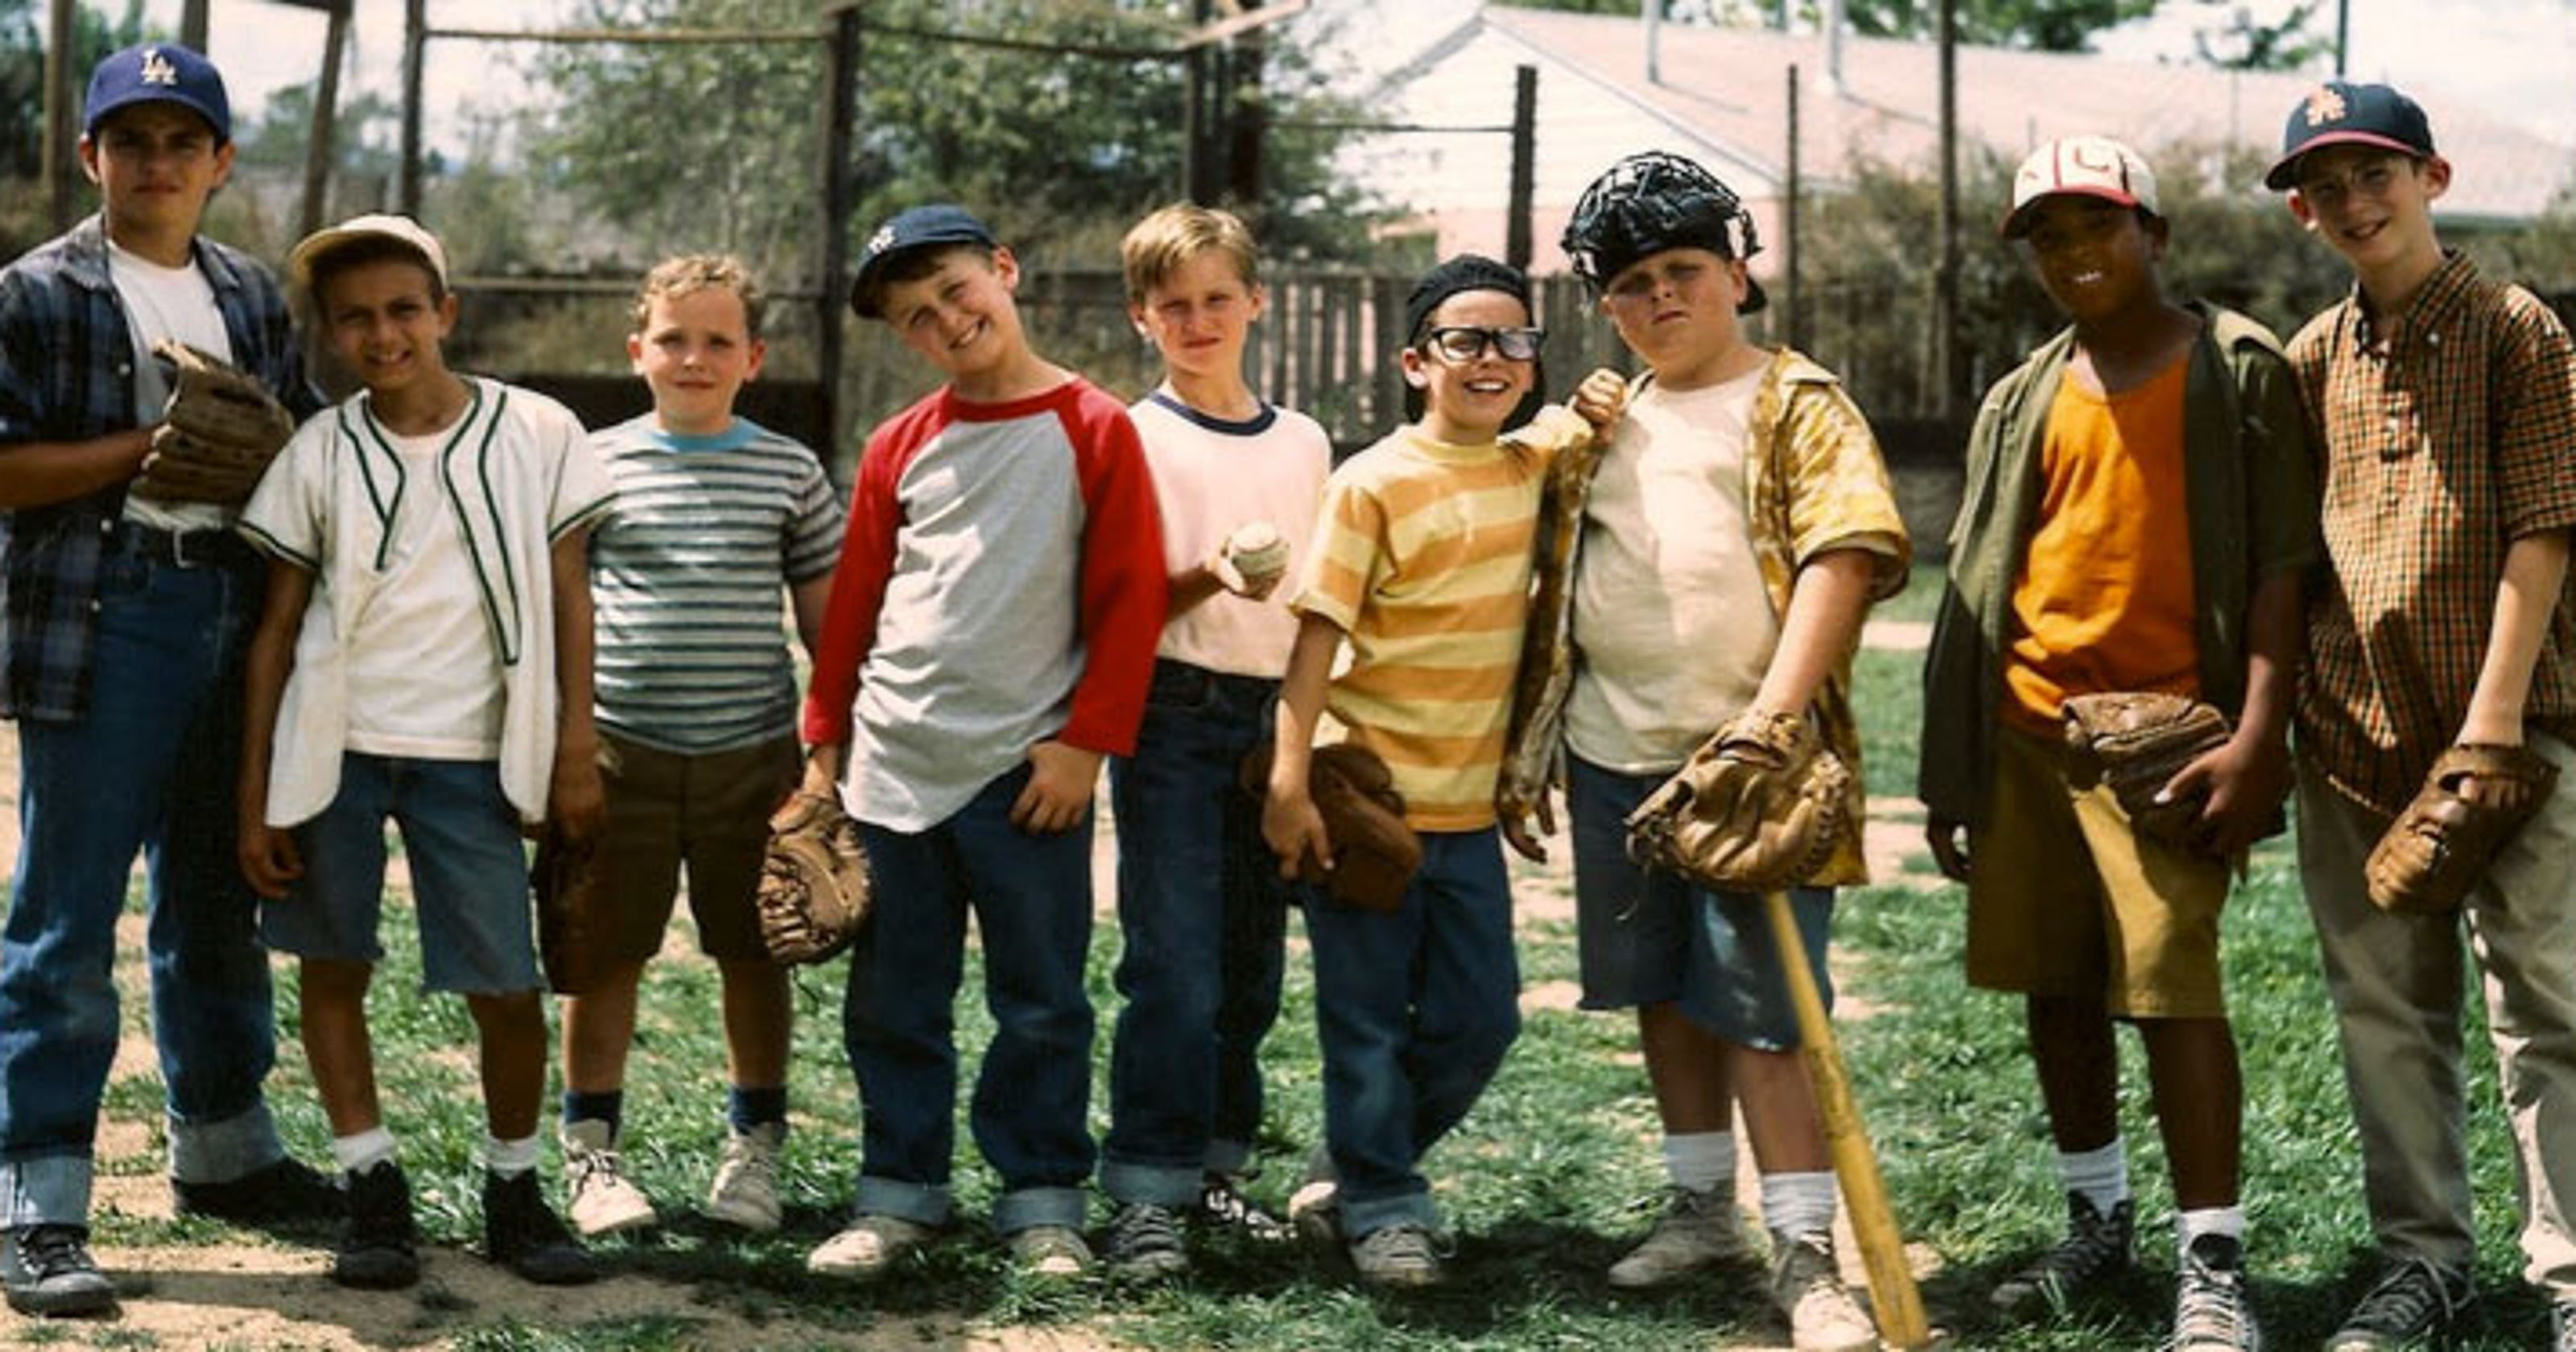 Sandlot' cast reunites after 25 years: See what they look